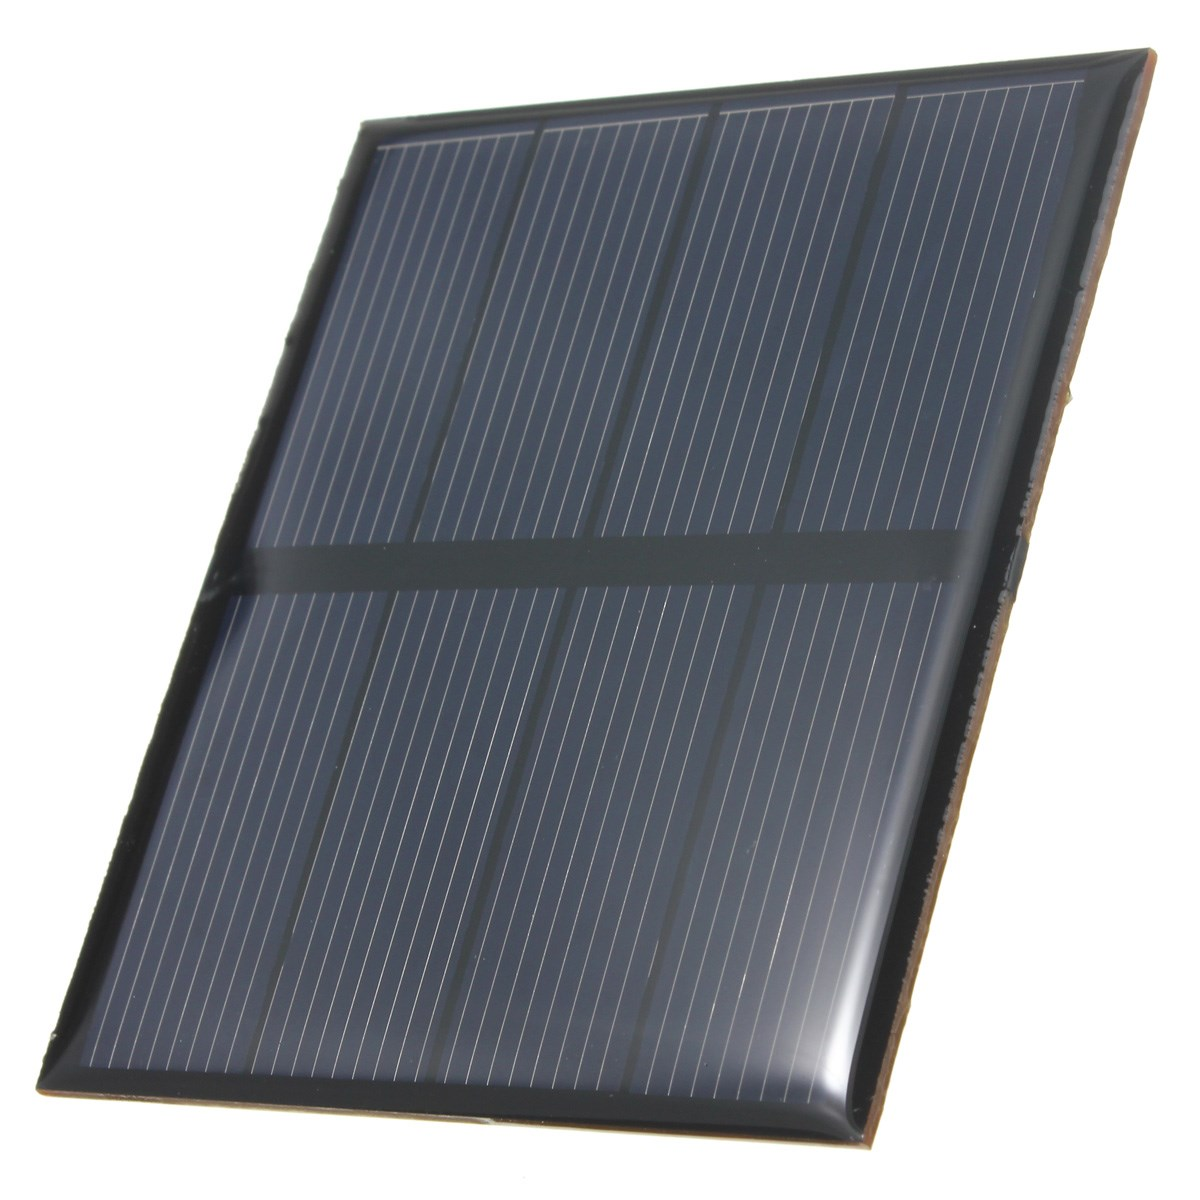 Hot Sale 2V 0.6W 300mAh Polycrystalline Silicon Epoxy Solar Panel Mini Solar Cells DIY Solar Module Stored Energy Power(China (Mainland))